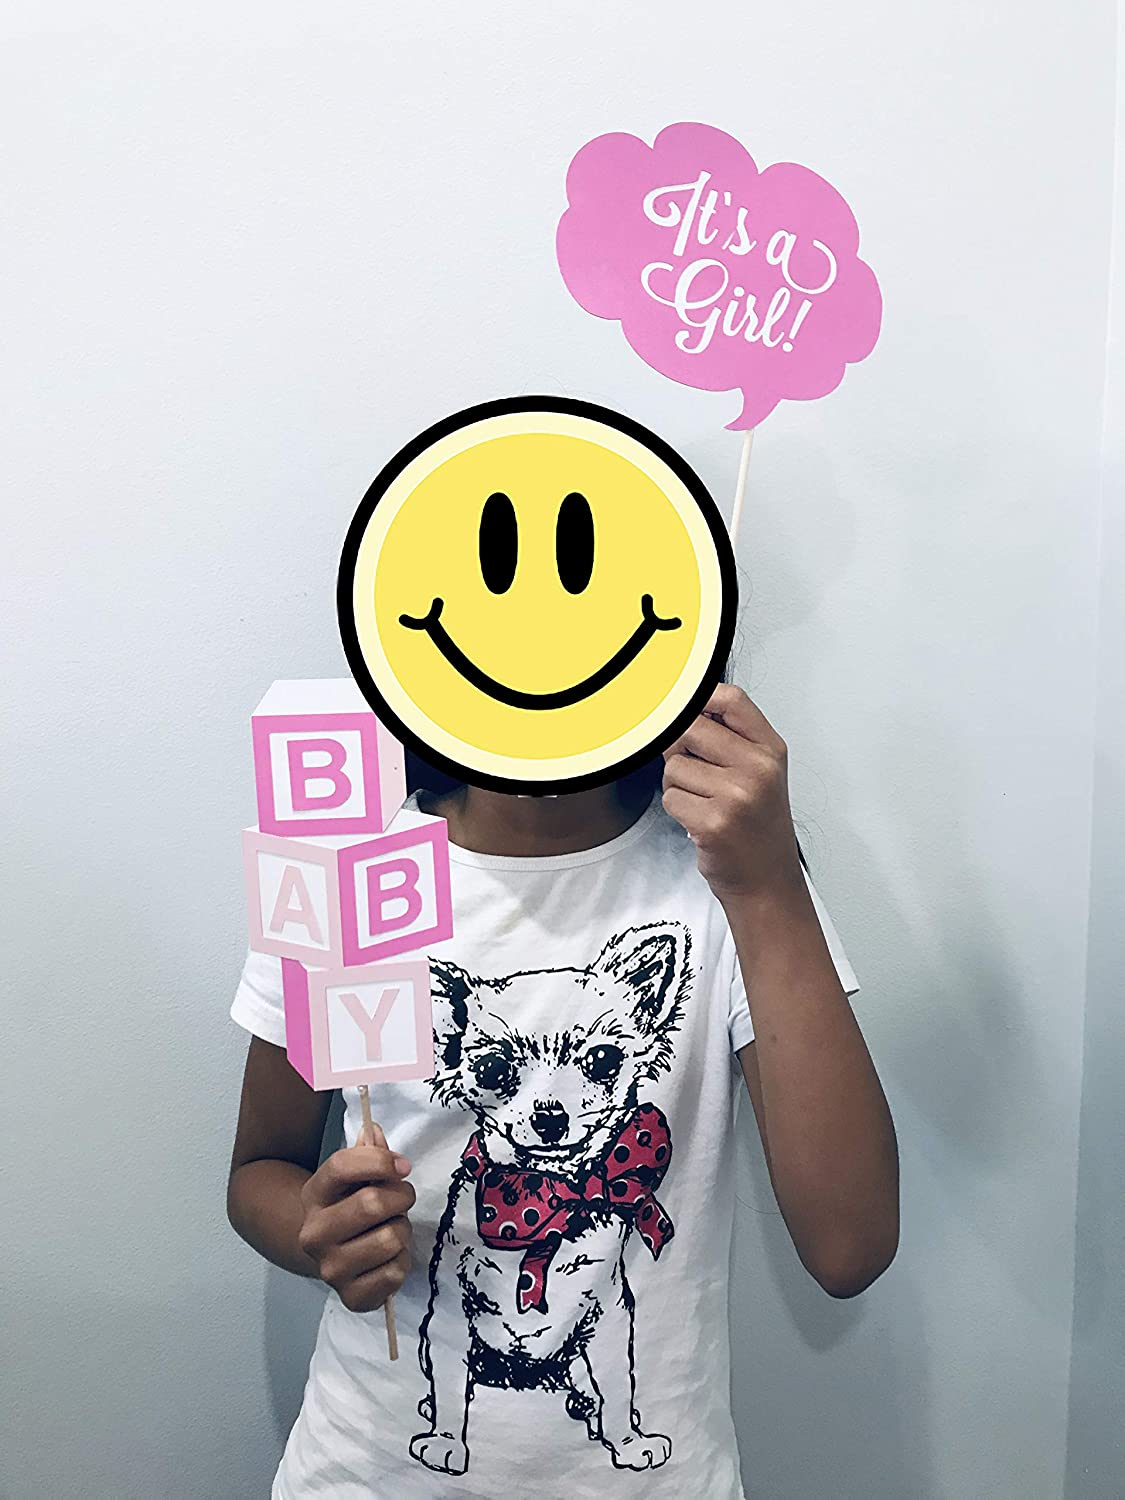 Baby Shower Centerpiece Baby Shower Decorations Baby Shower Photo Booth Props 15 pieces Gender Reveal Party Pink Baby Shower Party